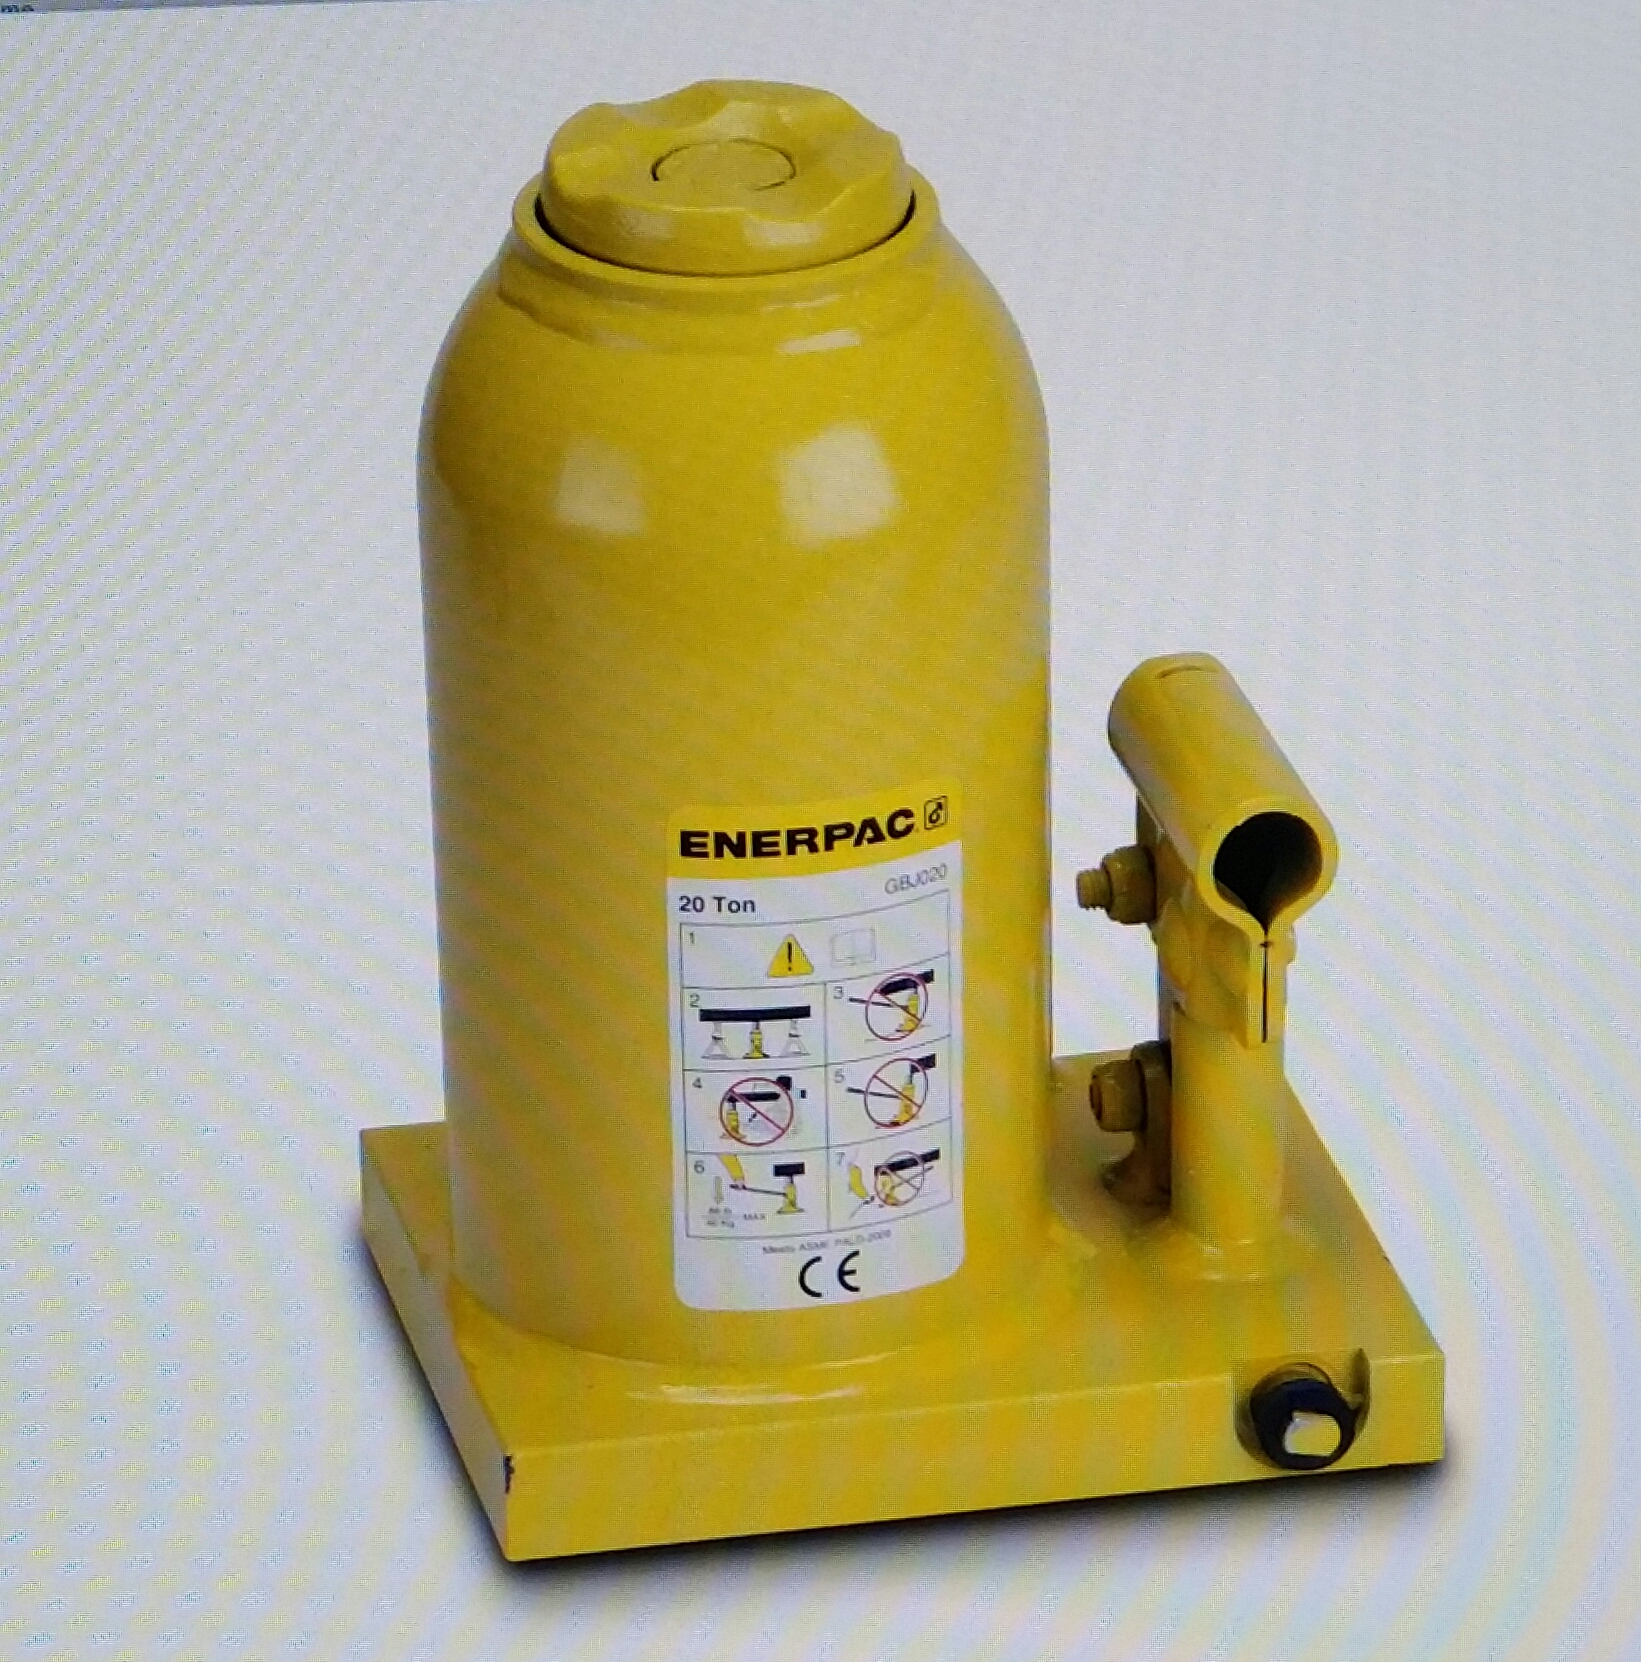 ENERPAC 20 TON BOTTLE JACK